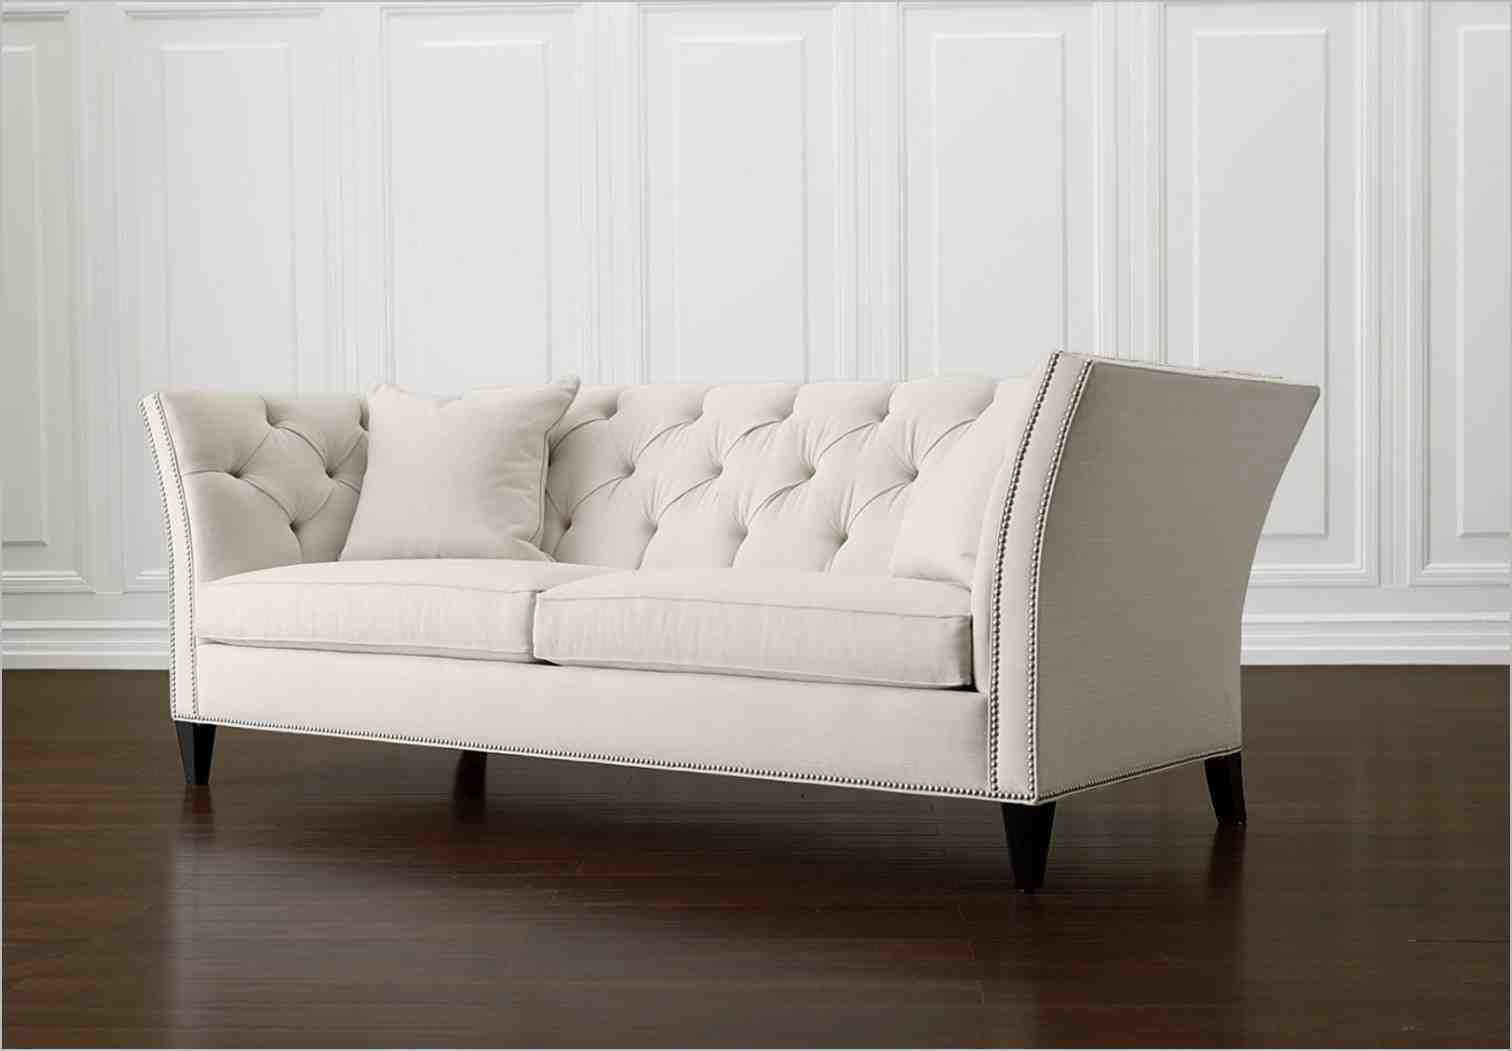 Ethan allen furniture sofas home design